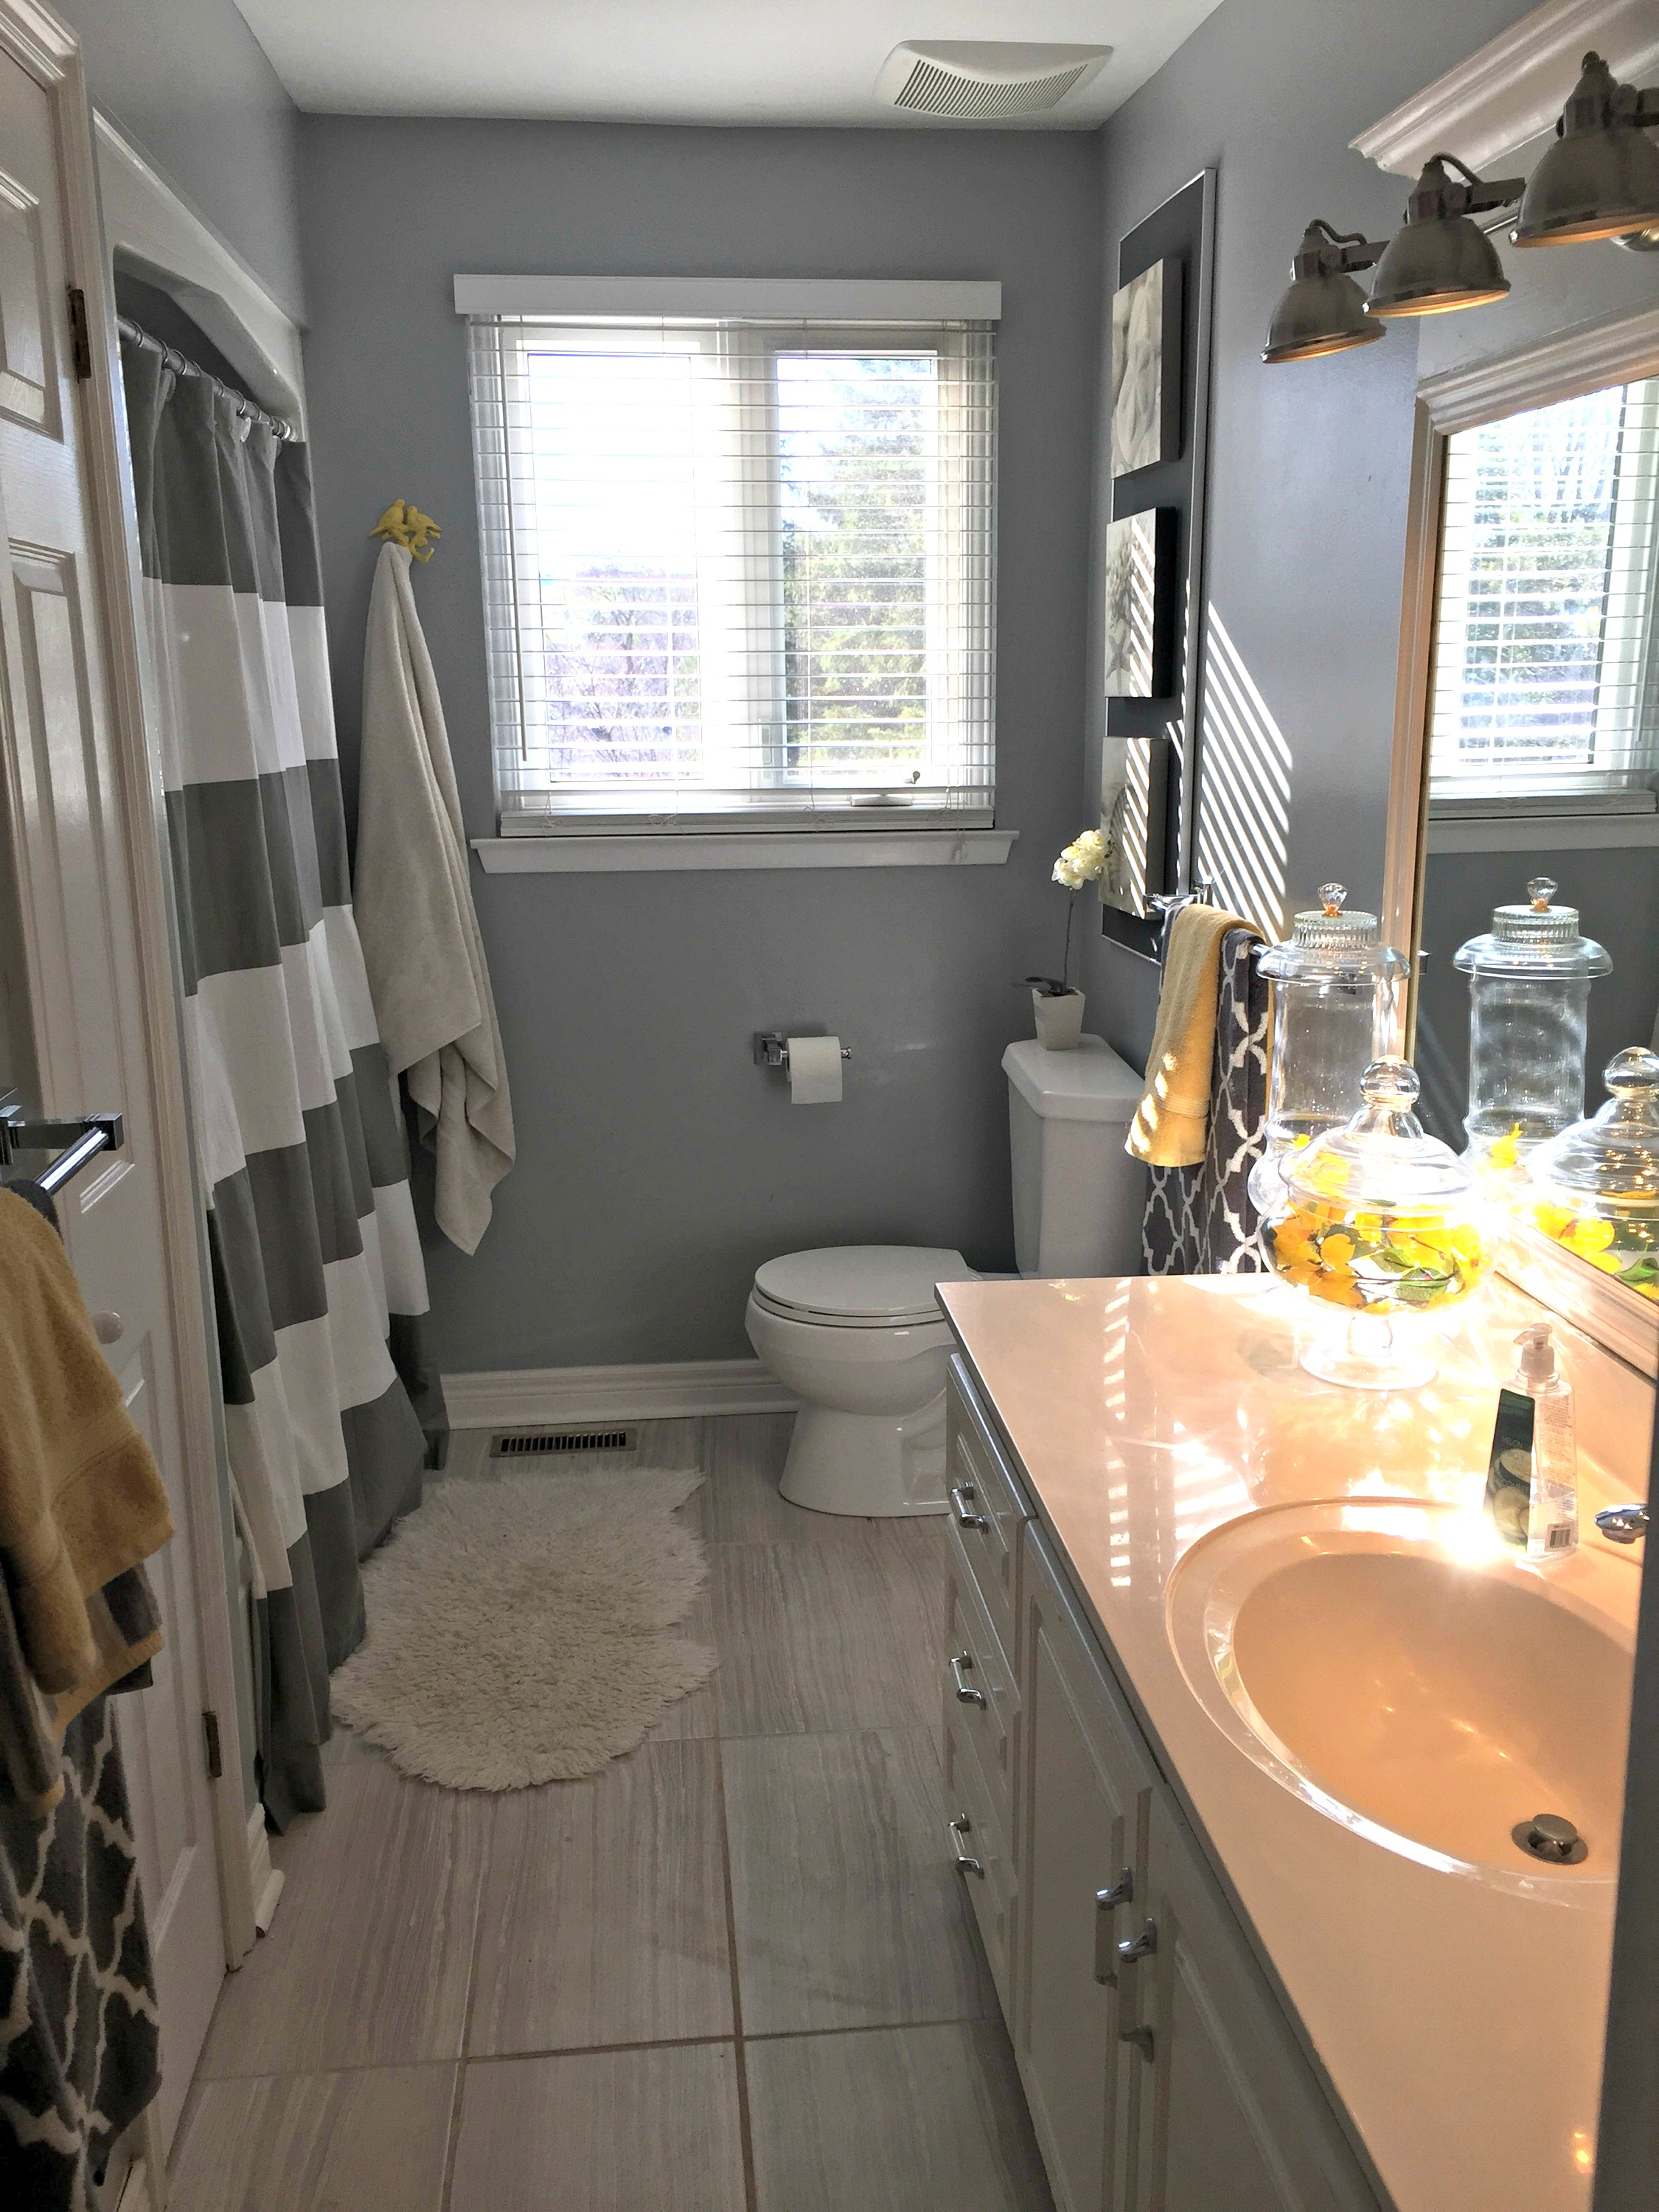 The best diy projects of 2016 a purdy little house for A bathroom item that starts with s